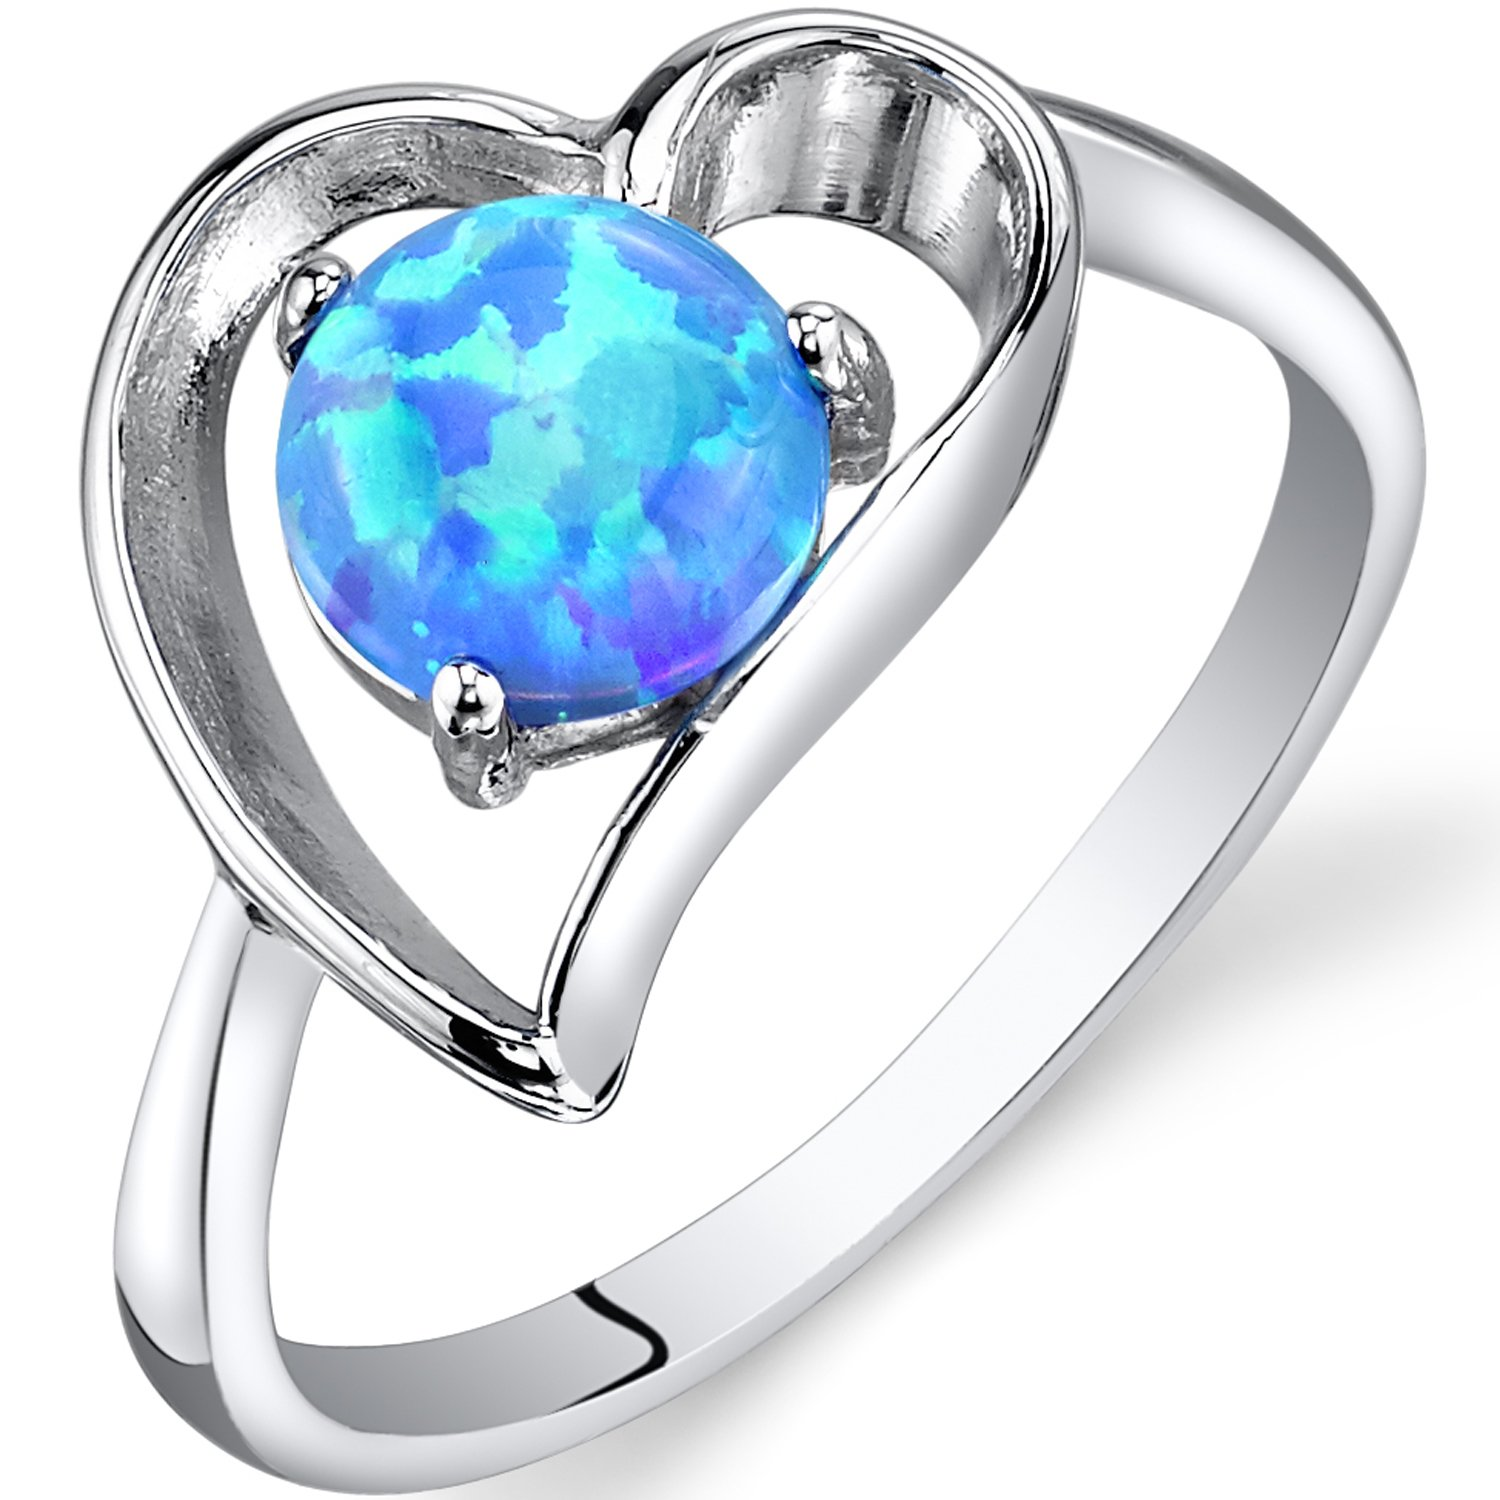 Created Powder Blue Opal Solitaire Heart Ring Sterling Silver Sizes 5 to 9